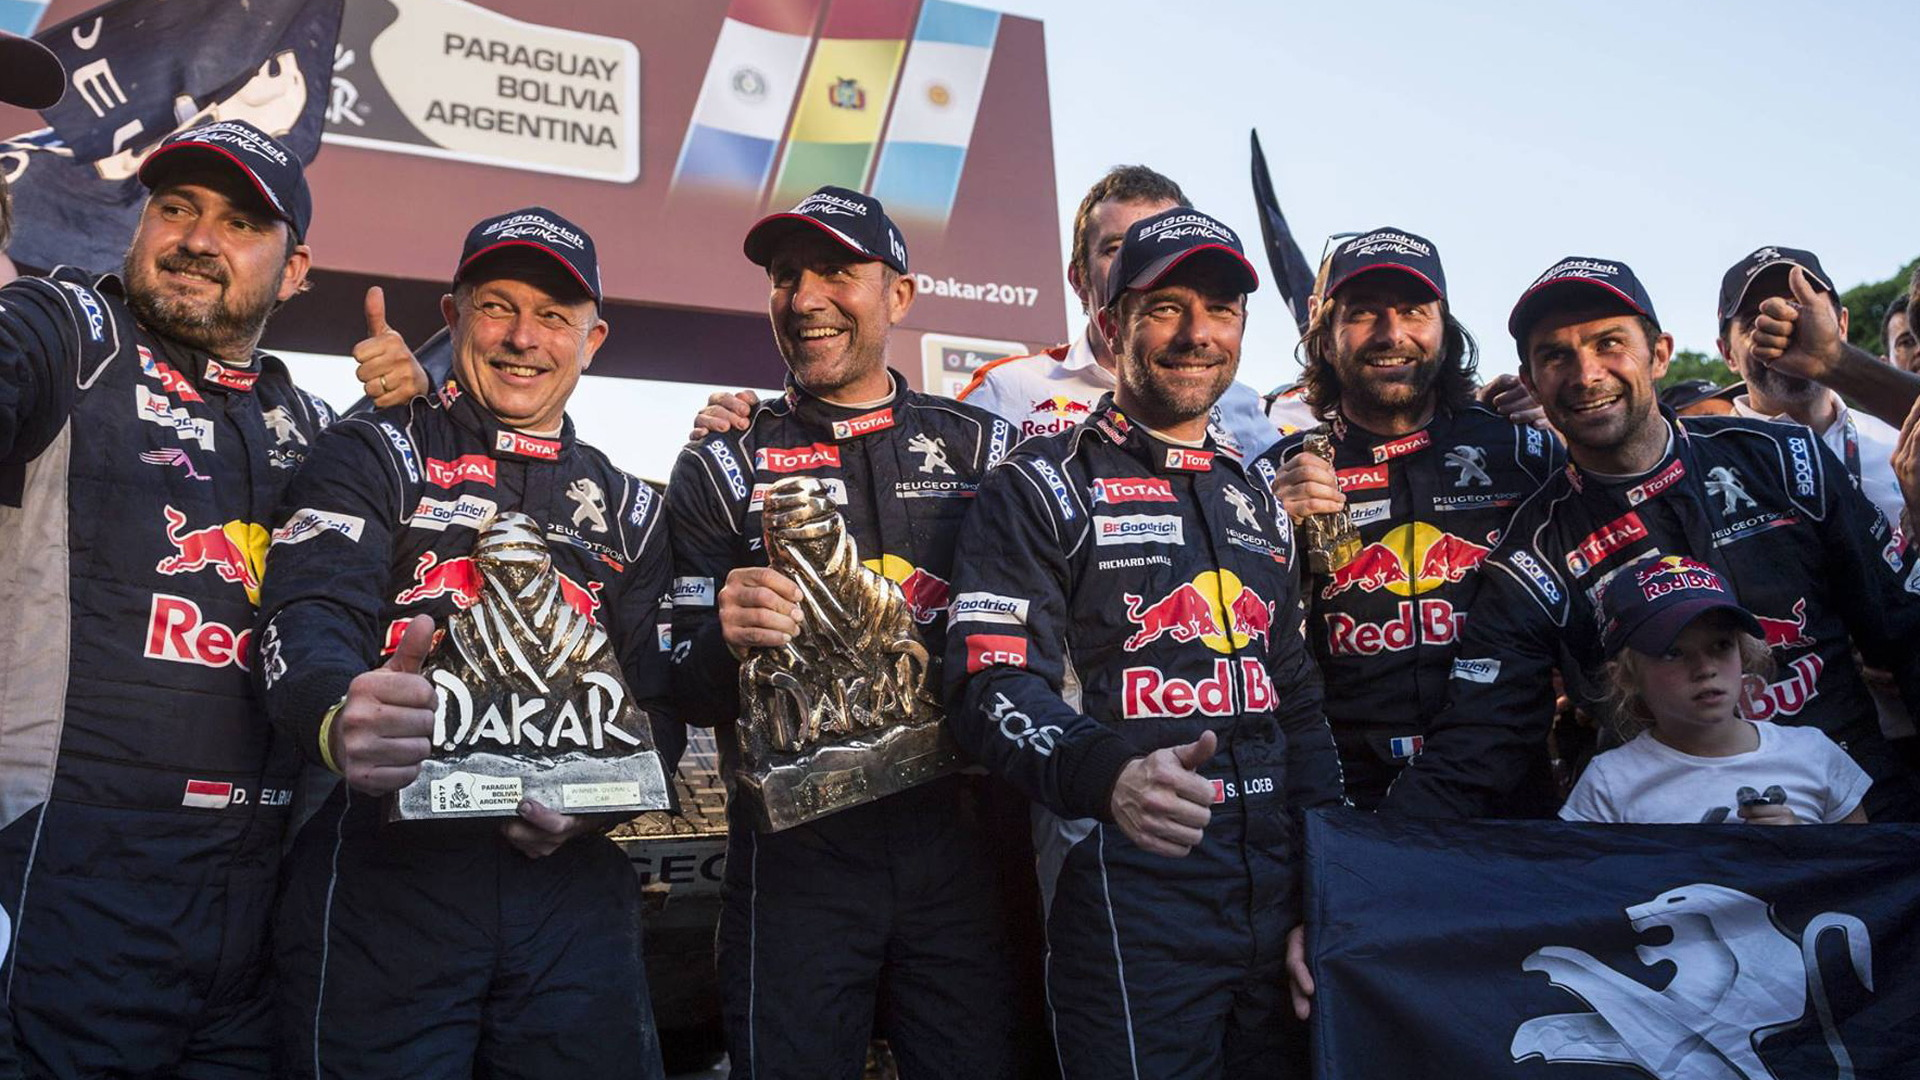 Peugeot one-two-three finish in the 2017 Dakar rally